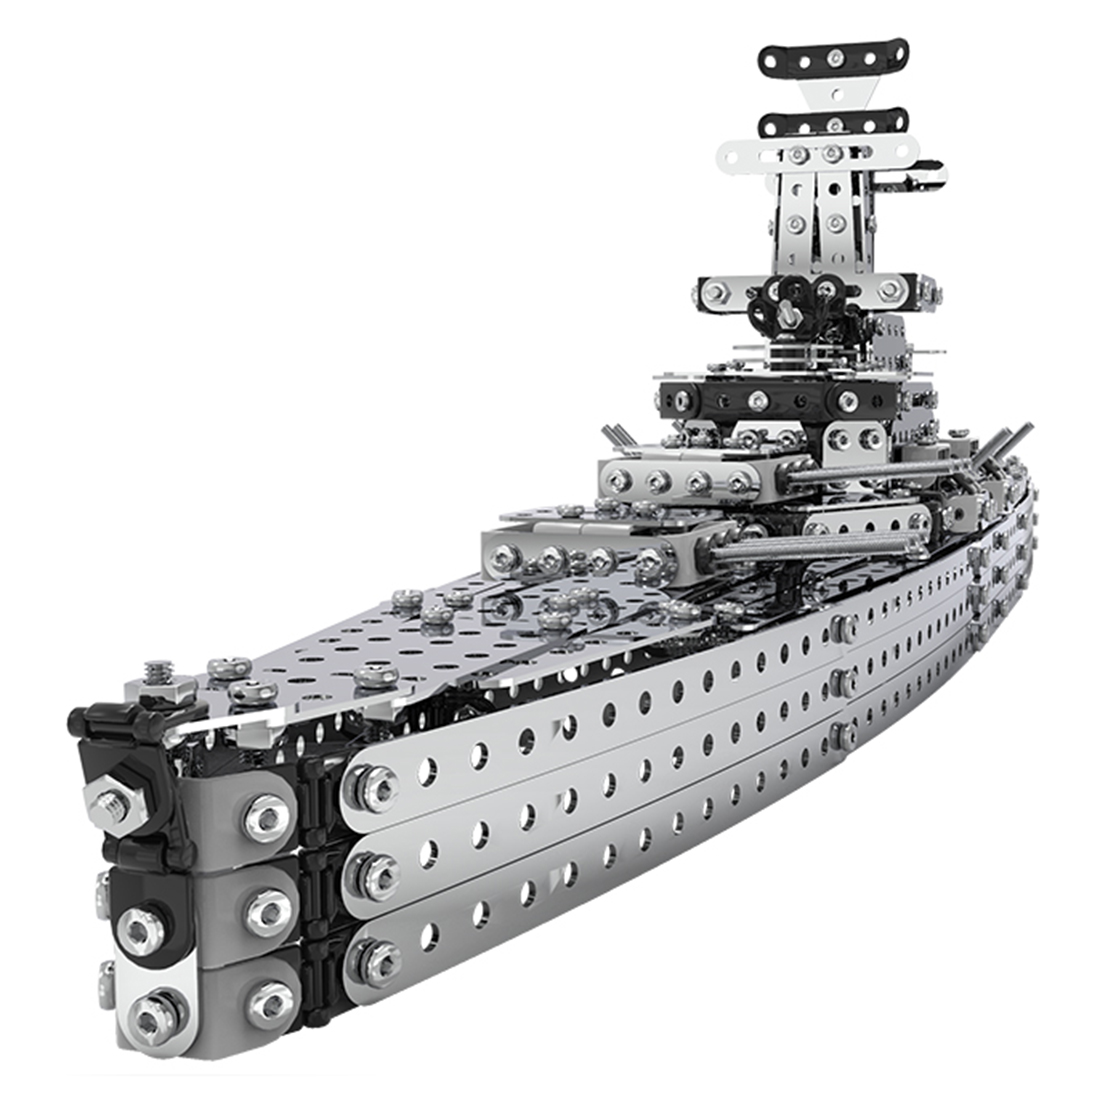 1188Pcs Simulation DIY Stainless Steel Static State Assembly Building Blocks Cruise Ships Boat Model Christmas Gifts 2019